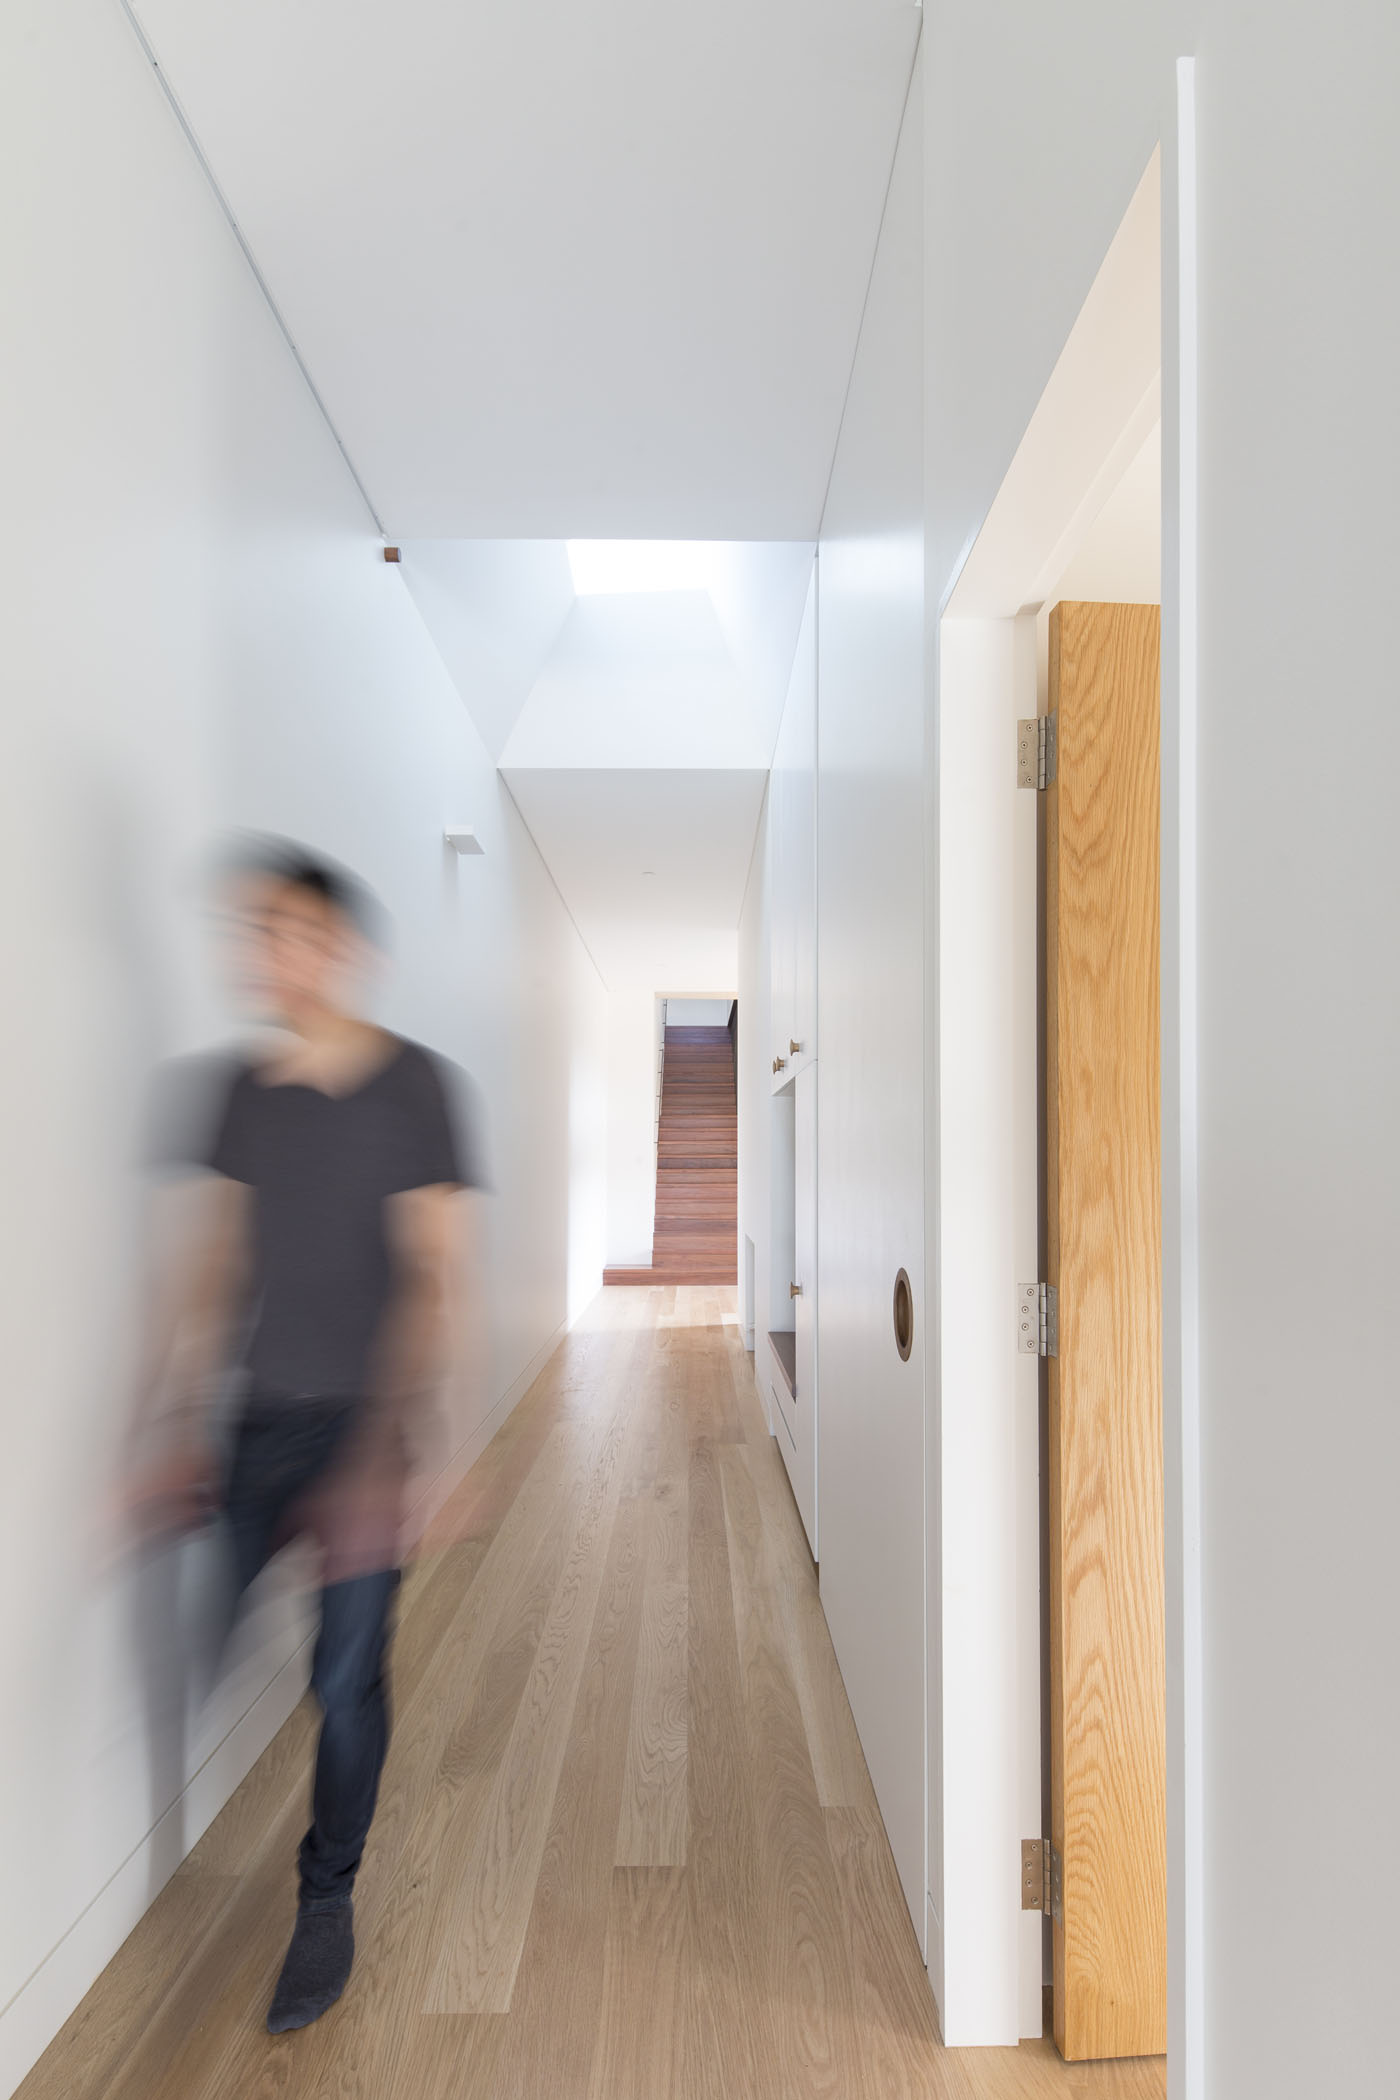 Sheppard Wilson House by Sydney award winning residential architecture office Sam Crawford Architects. Angled skylight allow sunlight into corridor